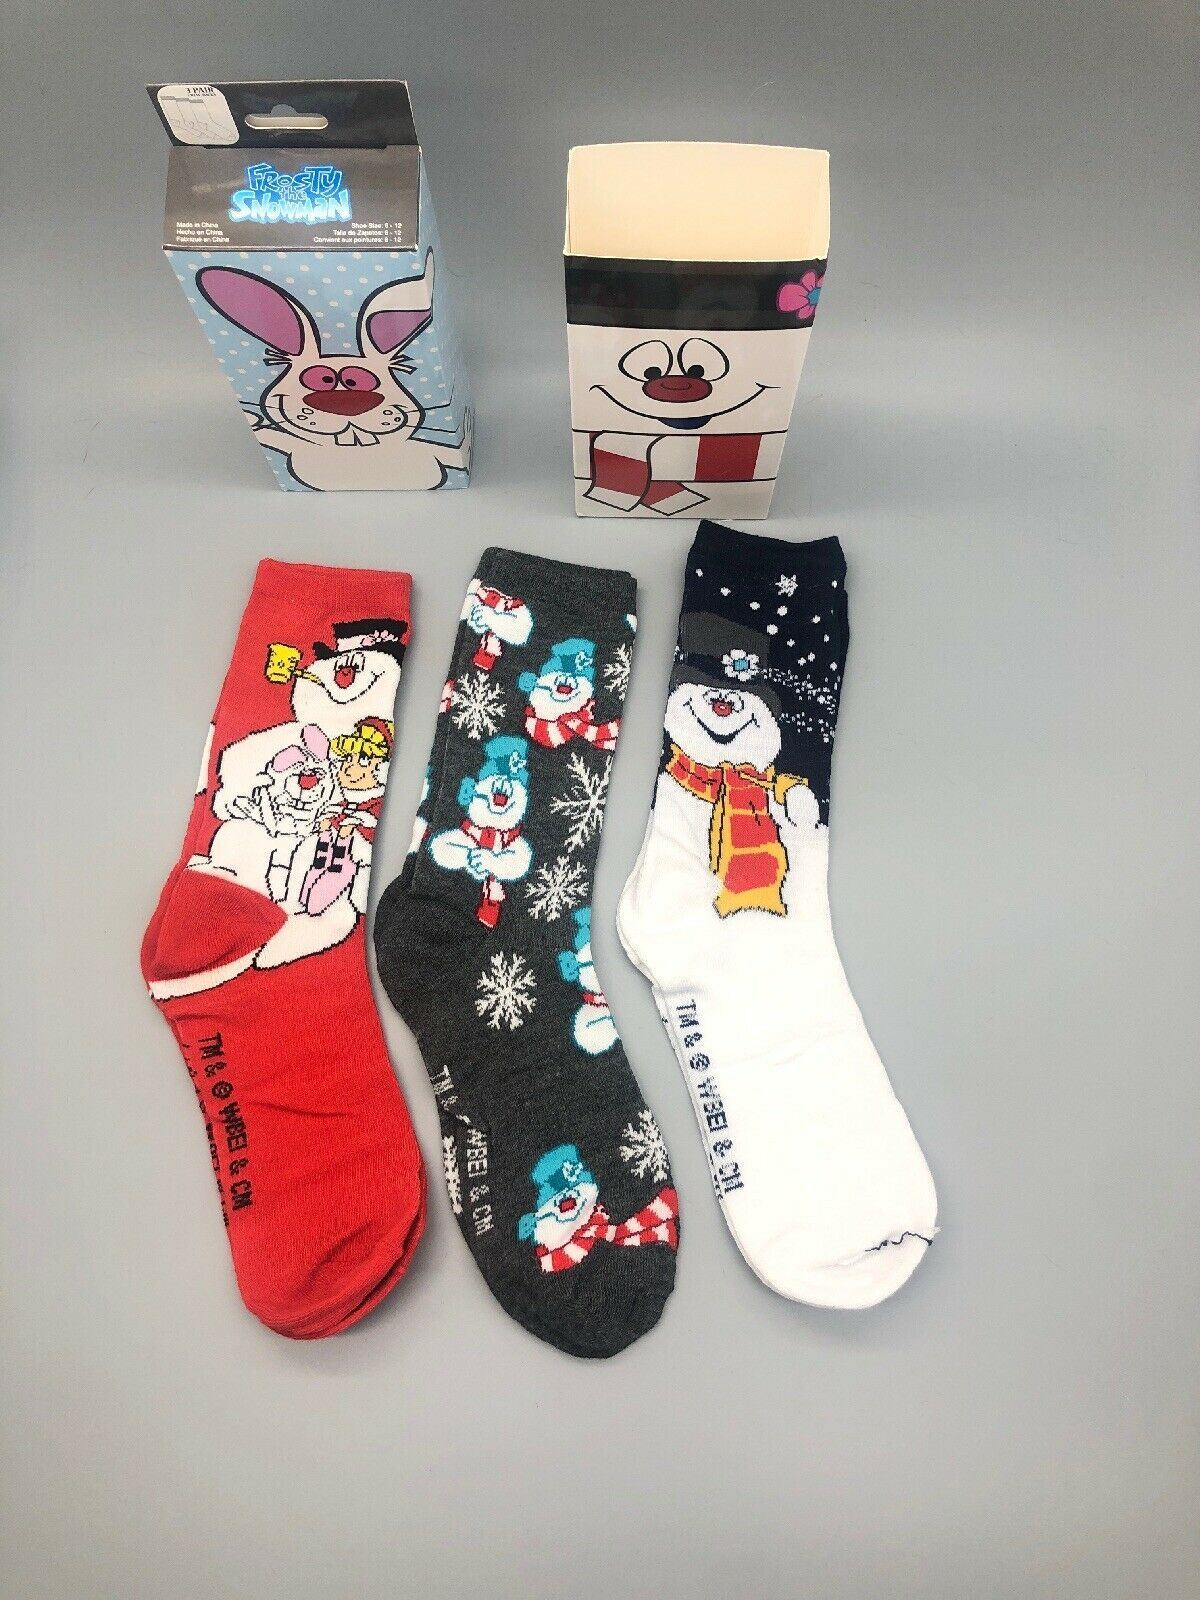 FROSTY THE SNOWMAN CHRISTMAS 3 Pack Crew Socks Size 6-12